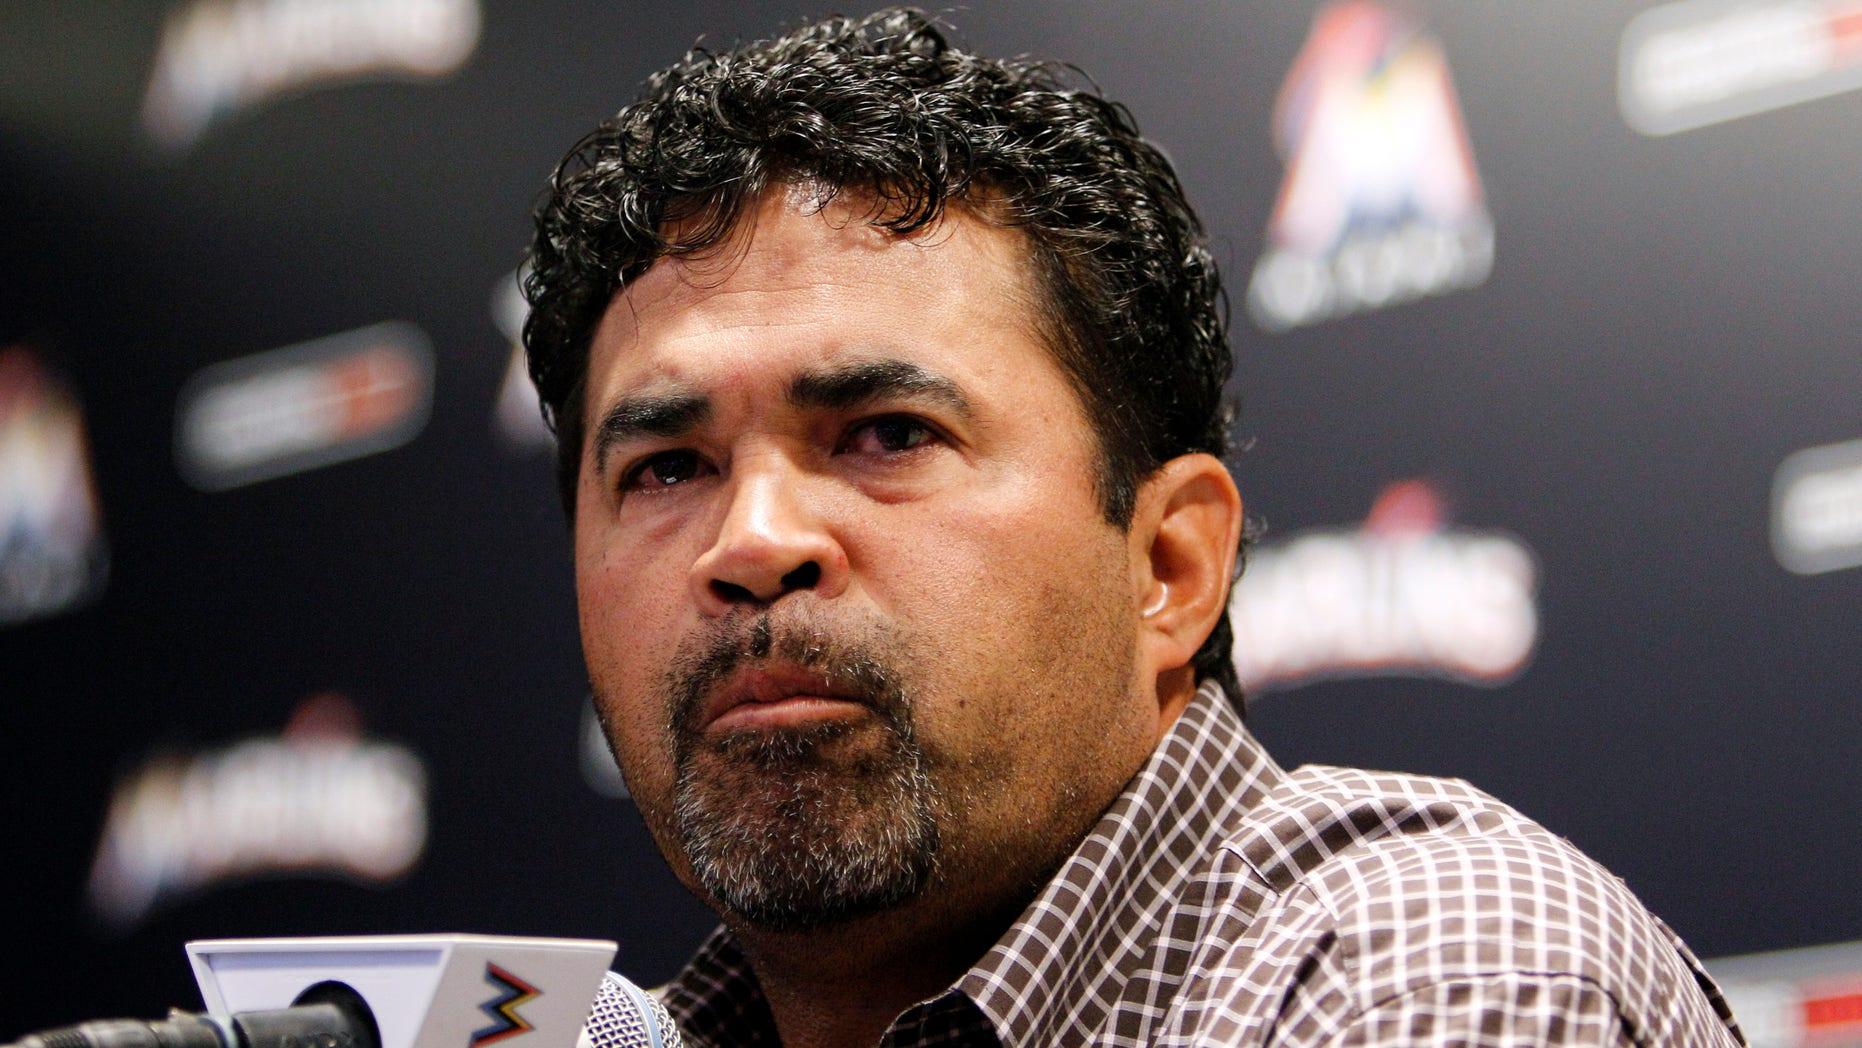 April 10. 2012: Miami Marlins manager Ozzie Guillen pauses as he speaks at a news conference at Marlins Stadium in Miami, Tuesday April 10, 2012.